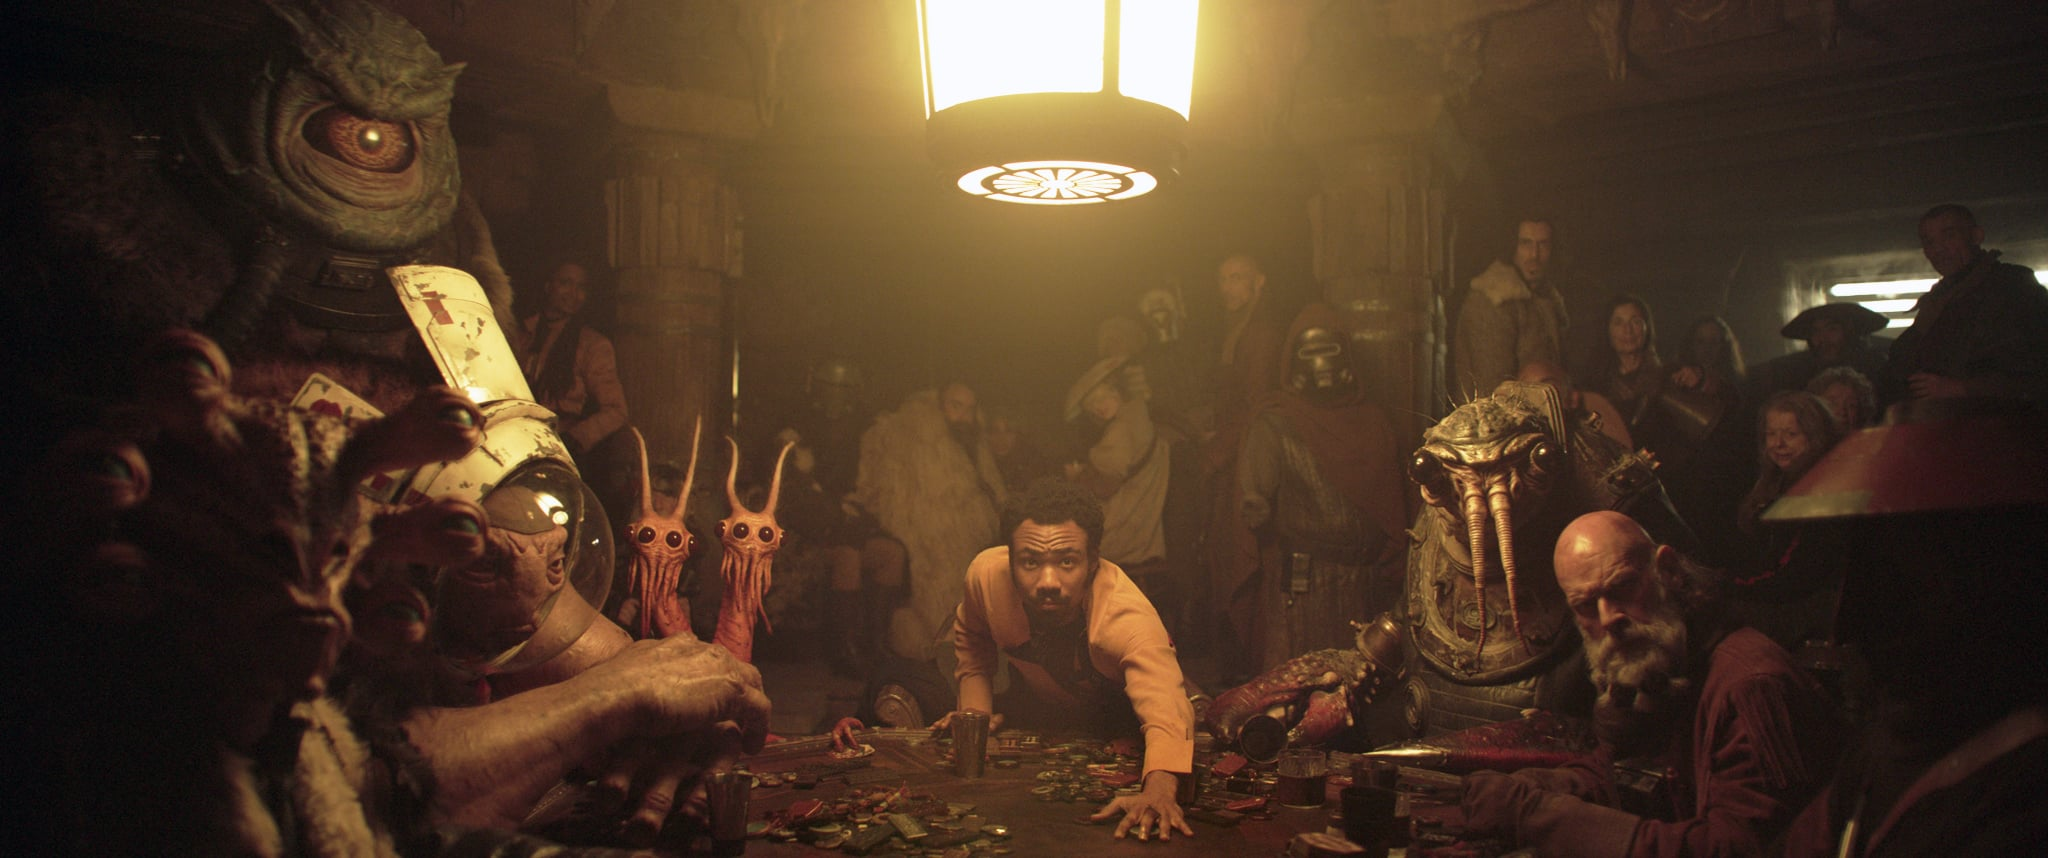 SOLO: A STAR WARS STORY,  Donald Glover as Lando Calrissian (center), 2018.  Lucasfilm/  Walt Disney Studios Motion Pictures /Courtesy Everett Collection